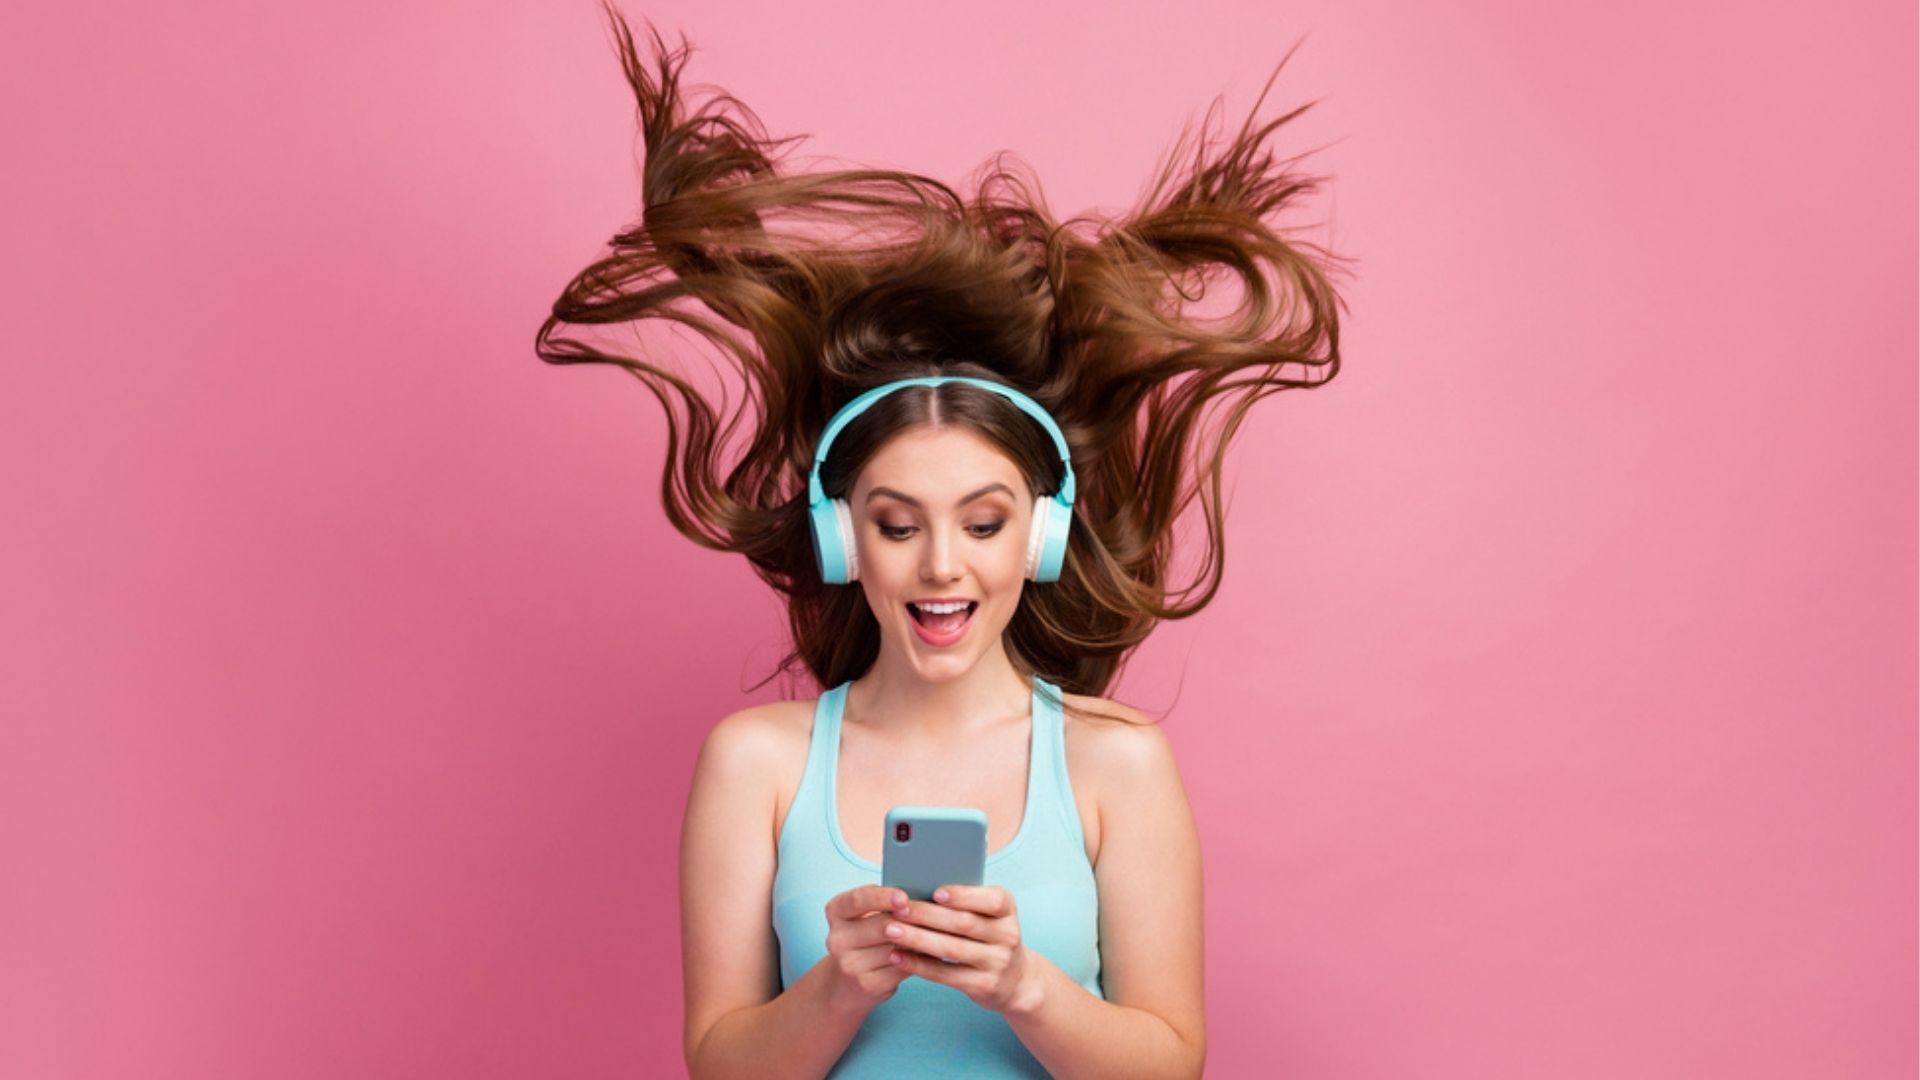 How To Wear Headphones With Long Hair